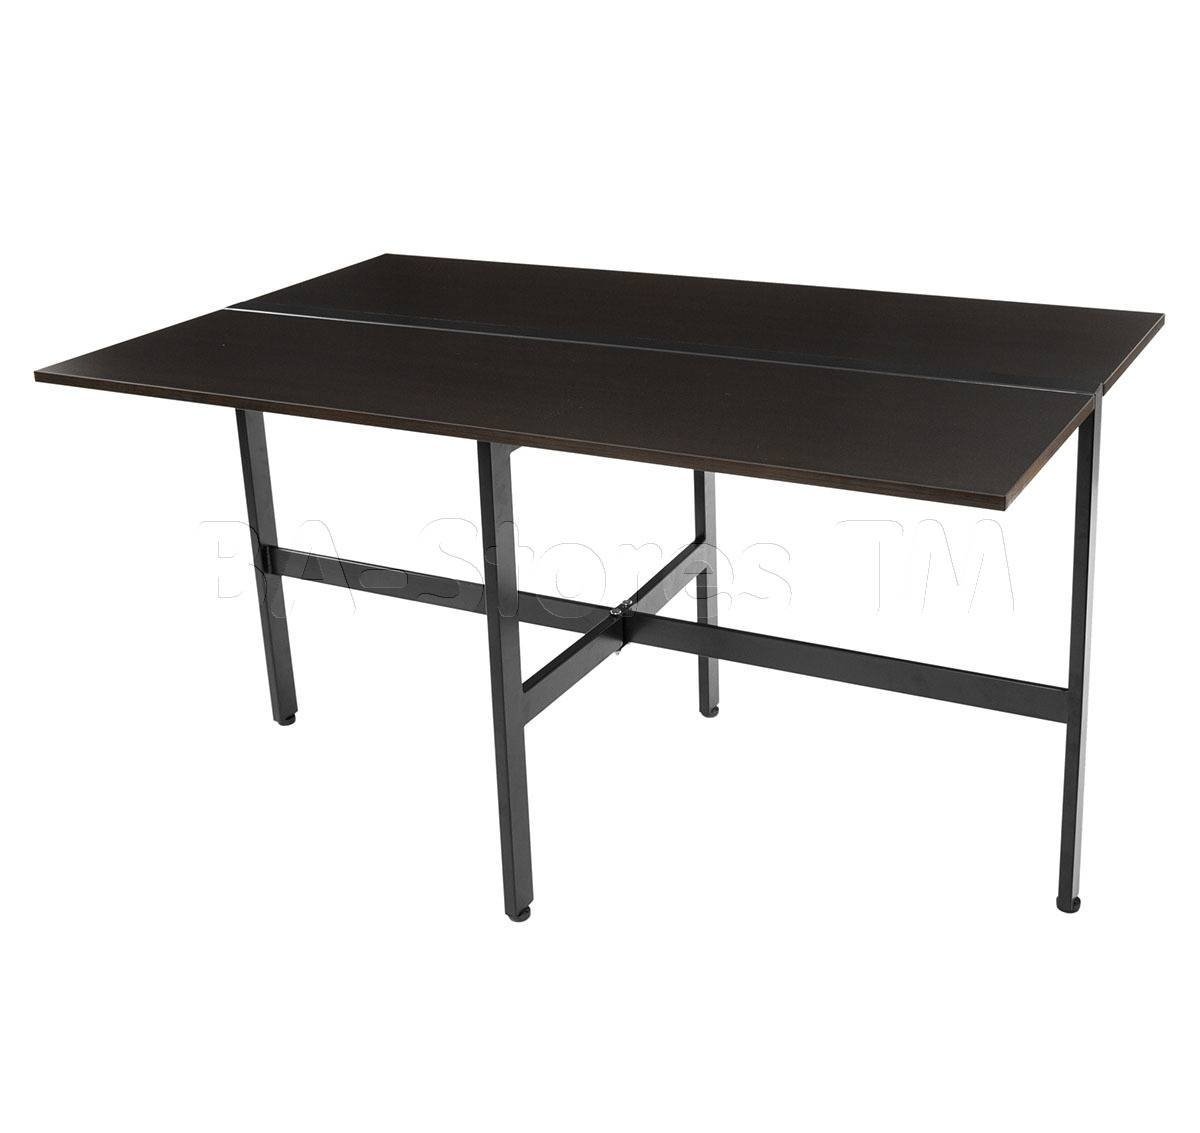 Matrix Imports Furniture Tokyo Folding Dining Table | Espresso inside Tokyo Coffee Tables (Image 12 of 30)